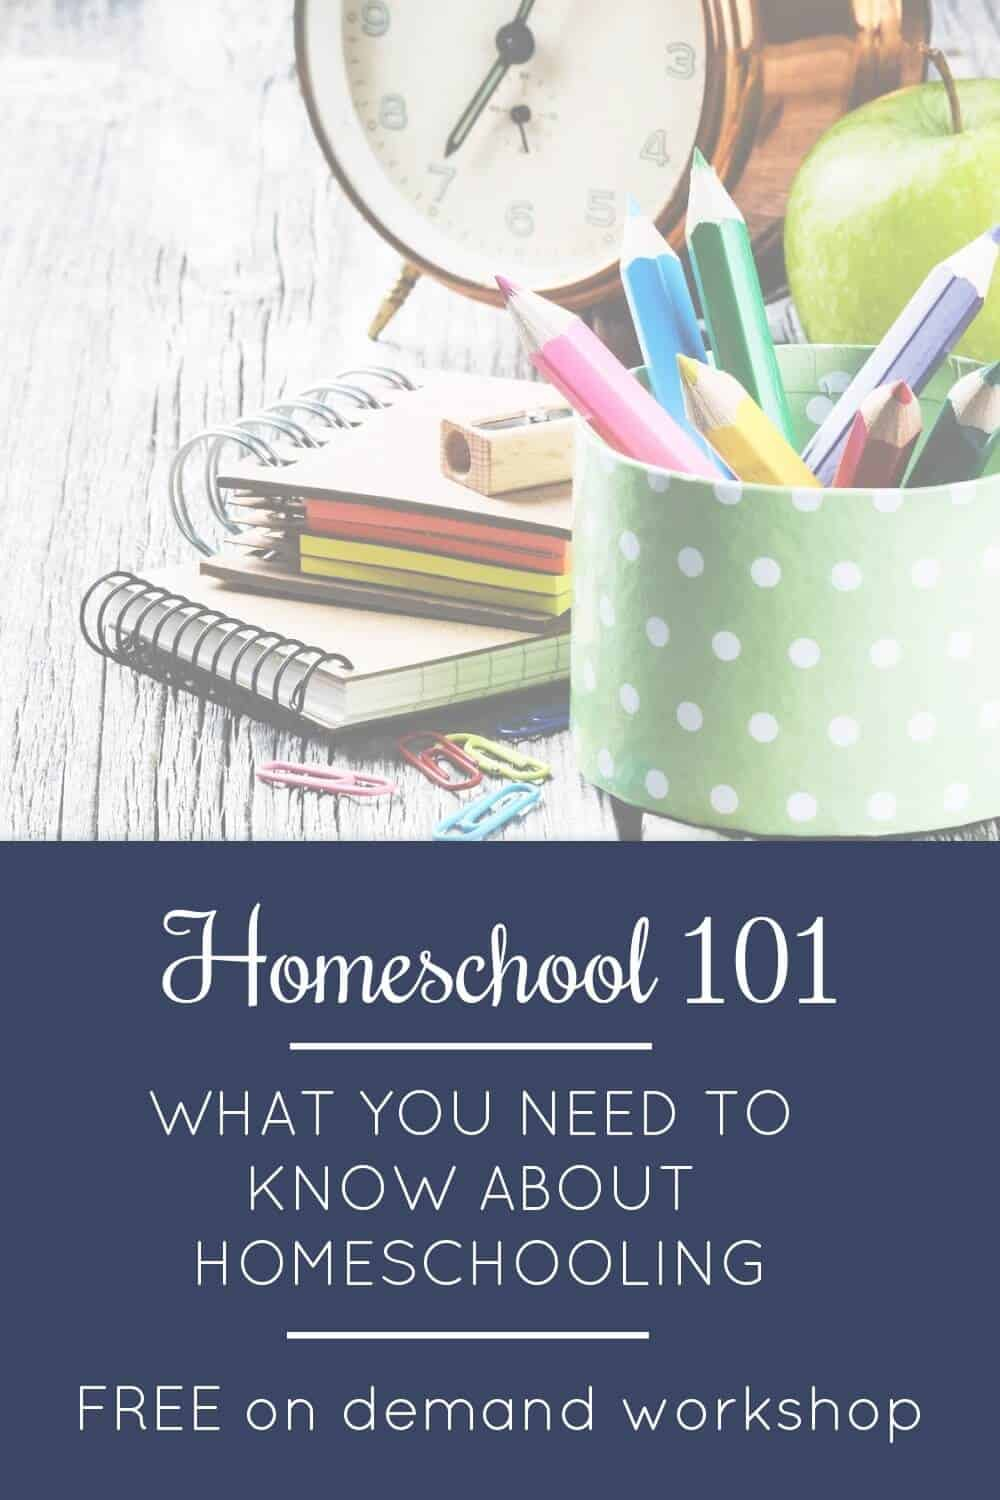 Learn what you need to know about homeschooling and how to get started in this FREE on-demand workshop! Plus, four FREE getting started guides. via @TriLearning